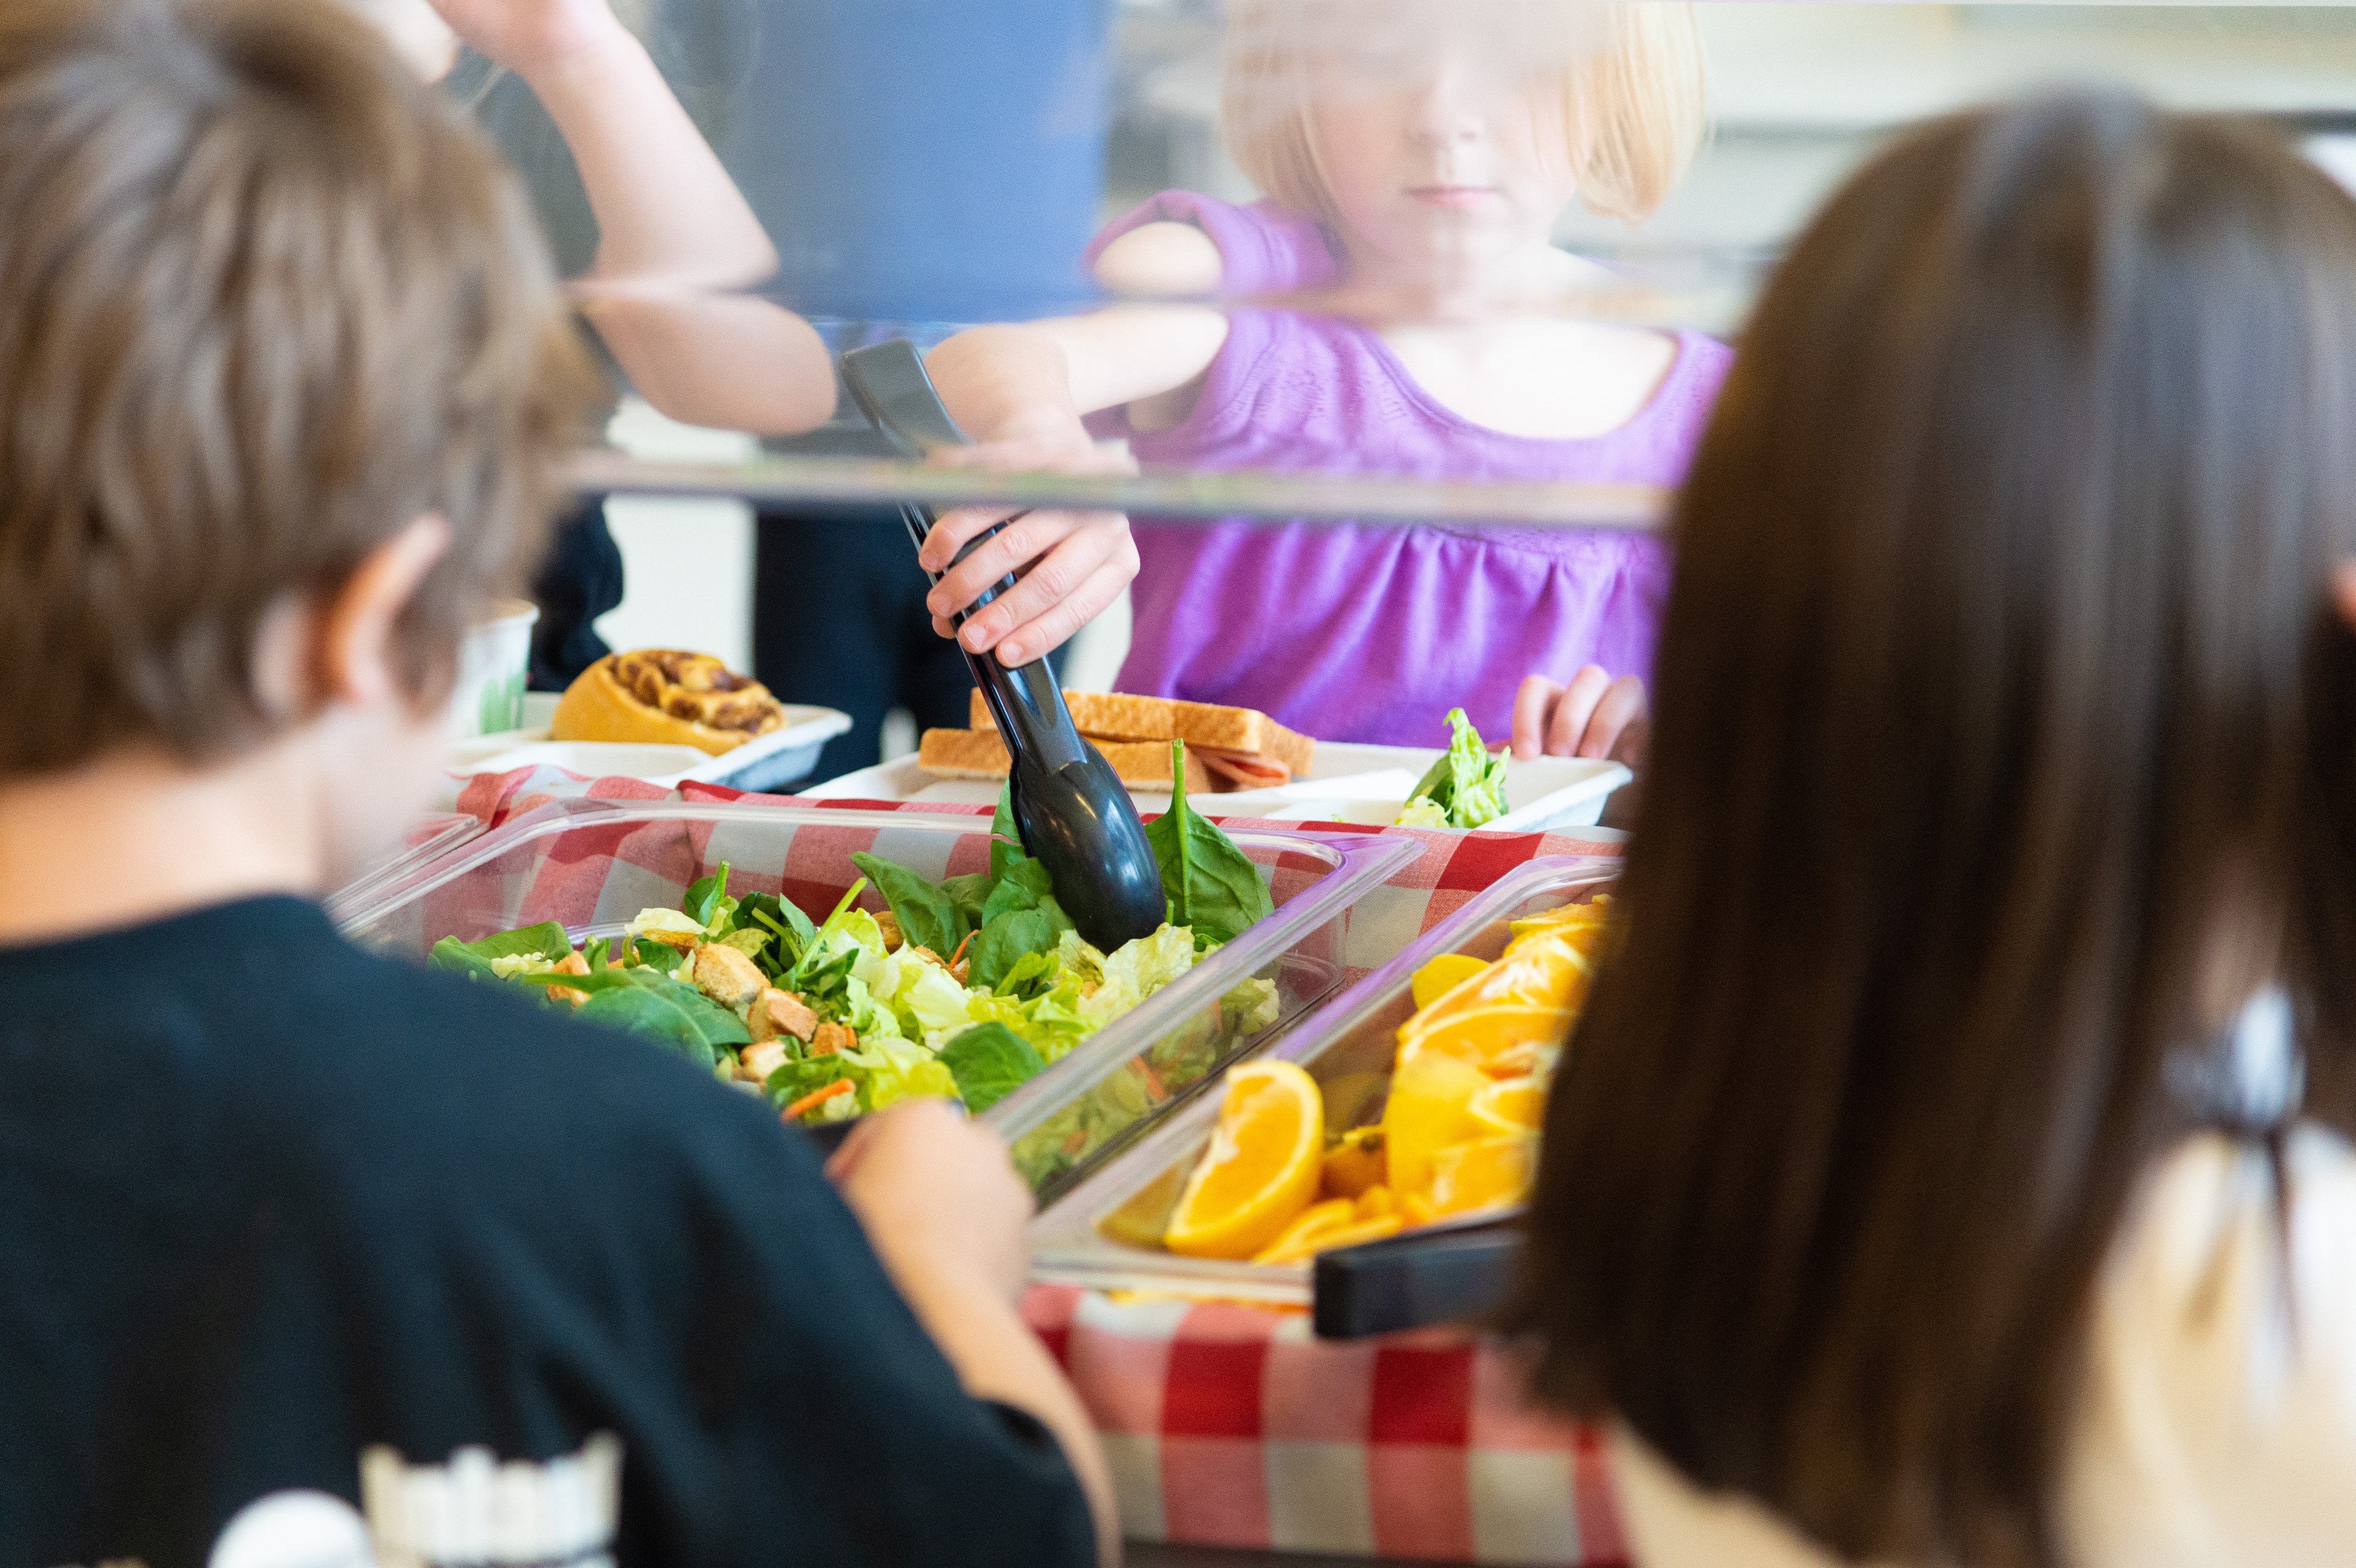 Students picking from salad bar